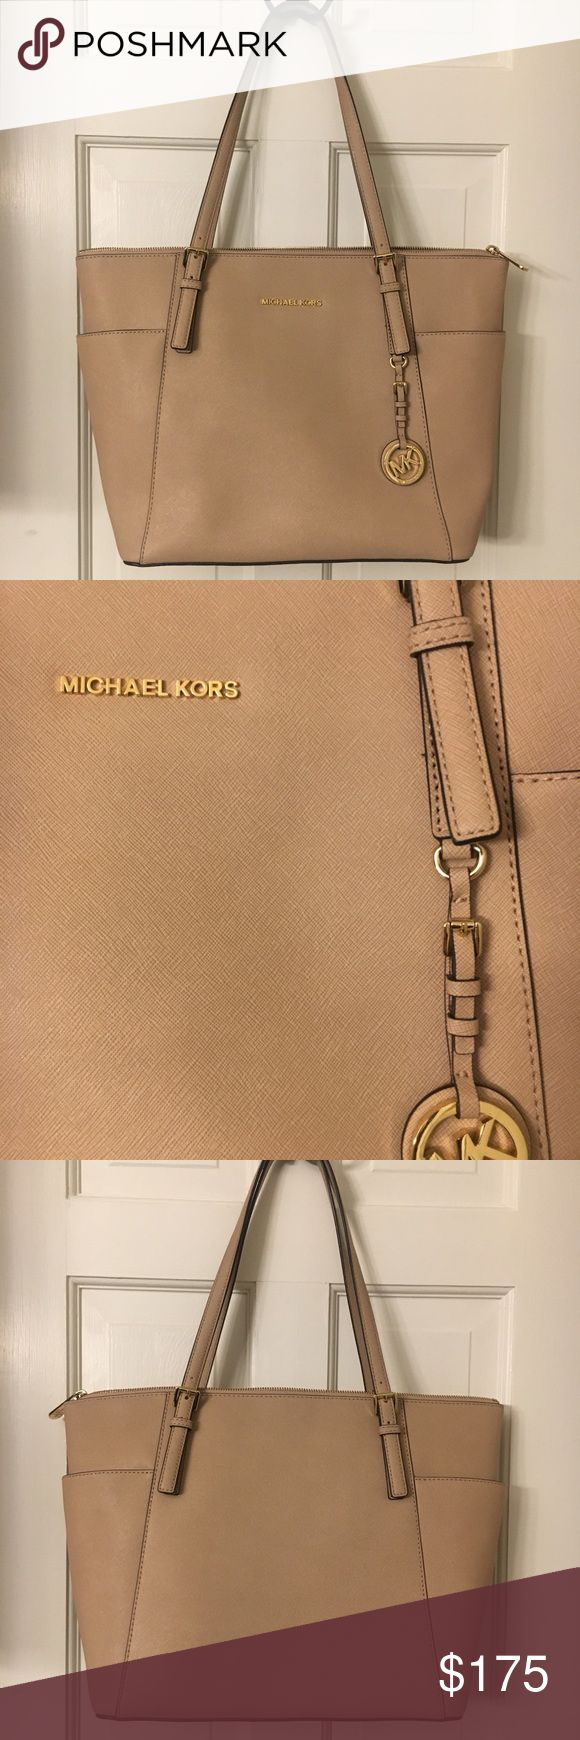 NWOT Michael Kors Jet Set Tote Never Carried East West Jet Set Tote in Smooth Saffiano Leather. The Color is called Blush. Stunning tote with Gold tone hardware and zip top closure. Lines with MK Signature lining, has key fab, zip side pocket, 2 cell pockets and a slip pocket. Exterior has 2 side pockets. MK booklet still in purse. Bought it for my daughter who didn't line it. Smoke free home Michael Kors Bags Totes